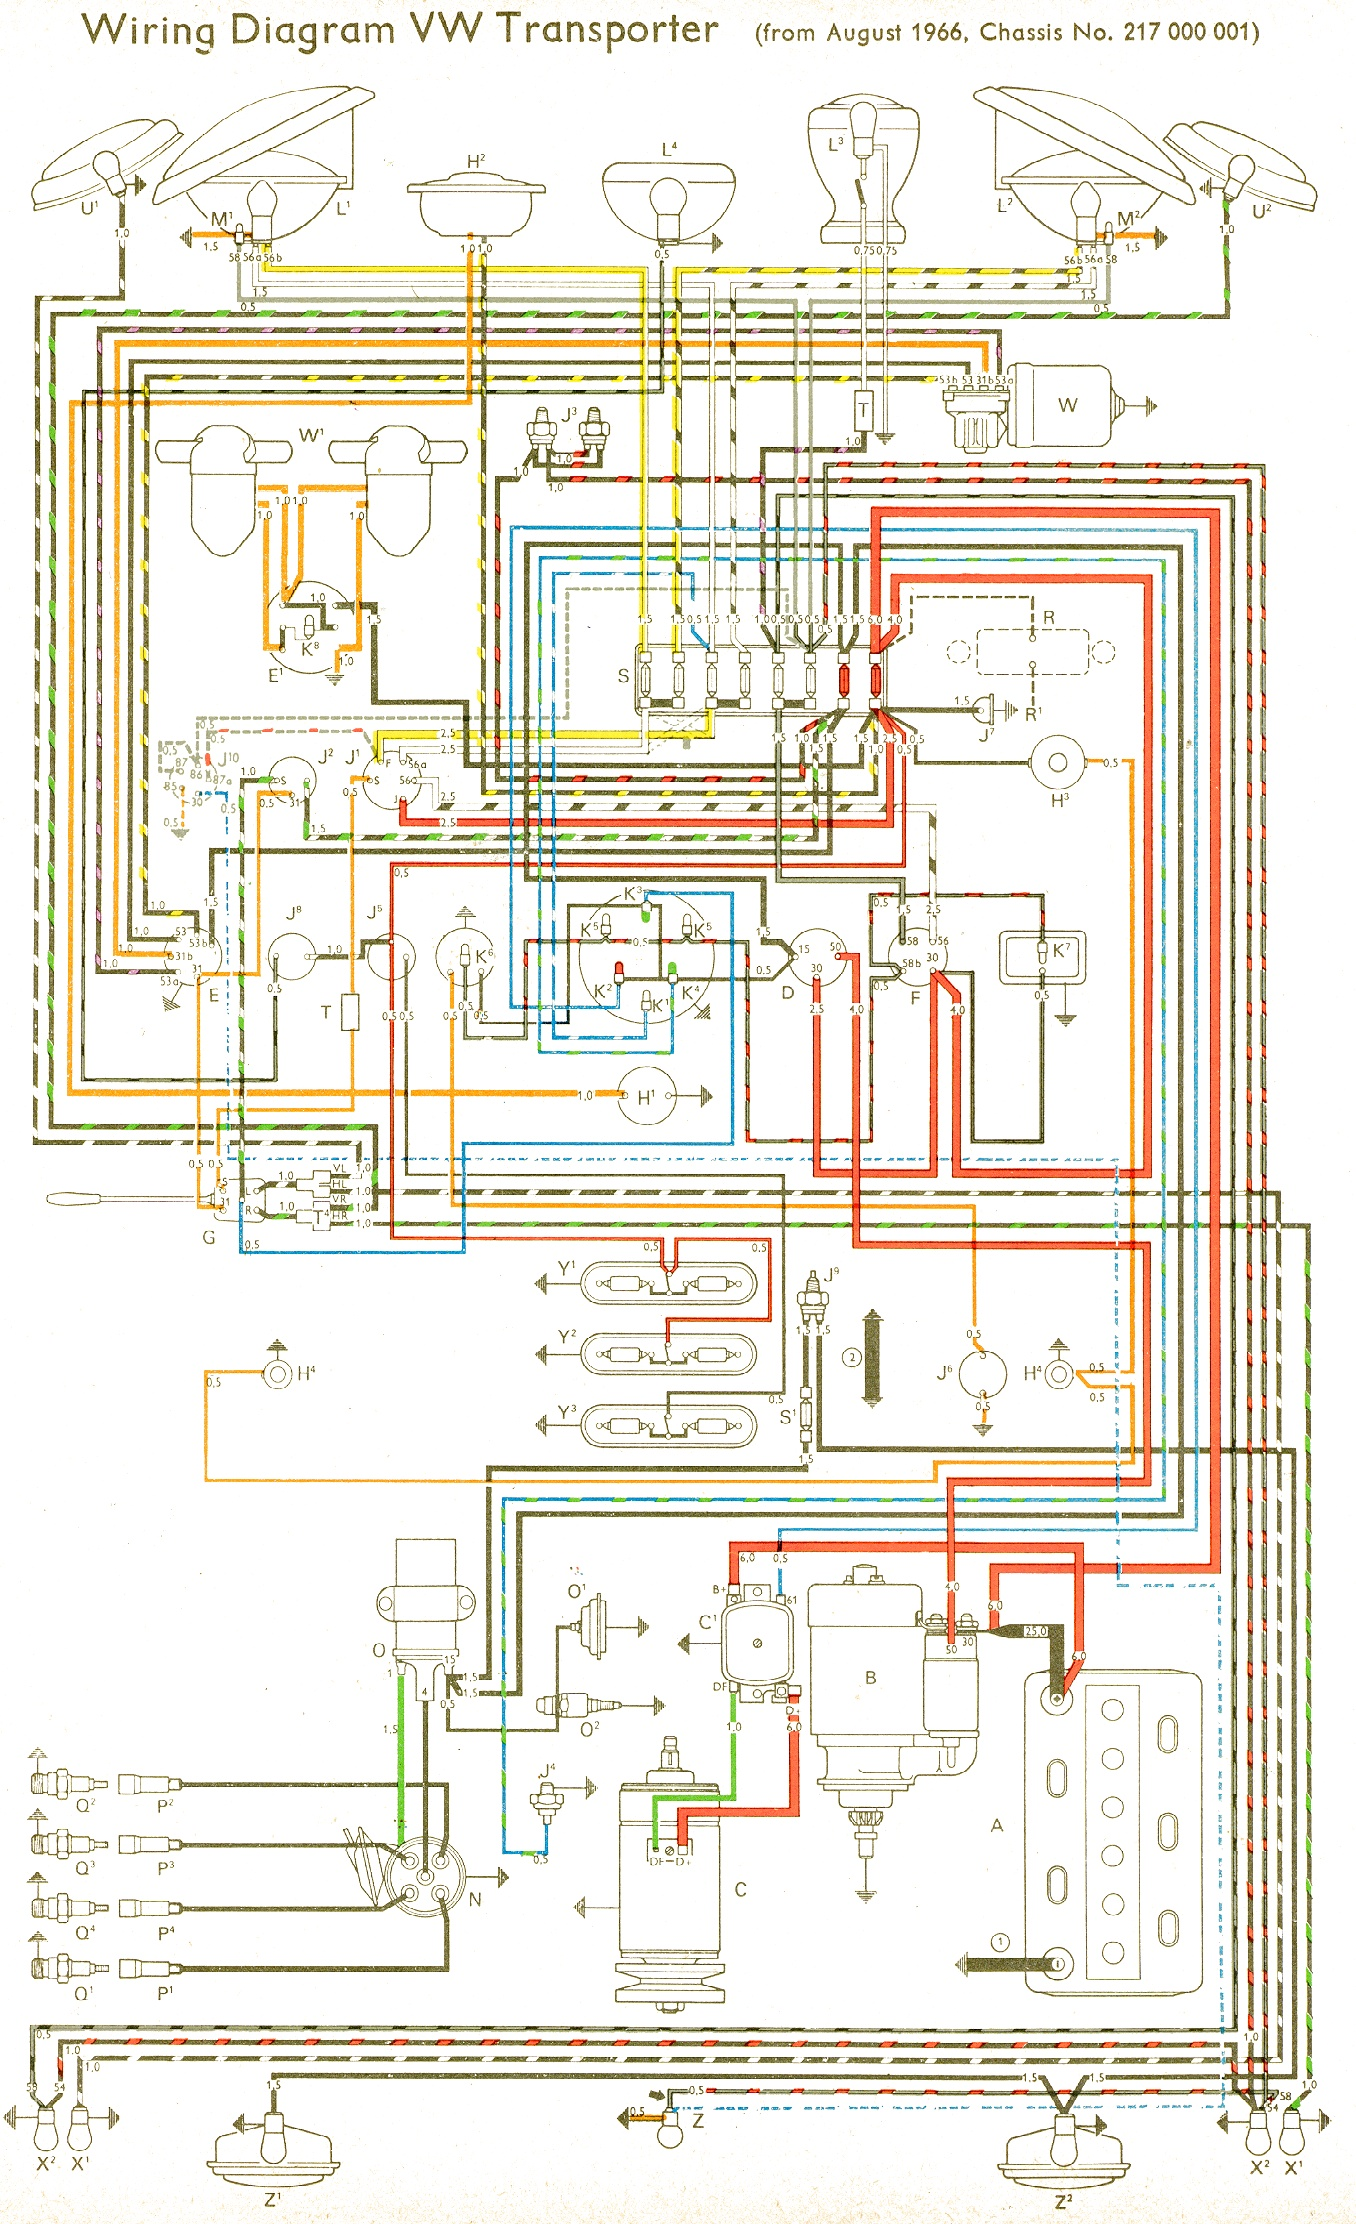 77 Vw Van Wiring Diagram The Portal And Forum Of Land Rover Ffr Todays Rh 9 10 7 1813weddingbarn Com Engine